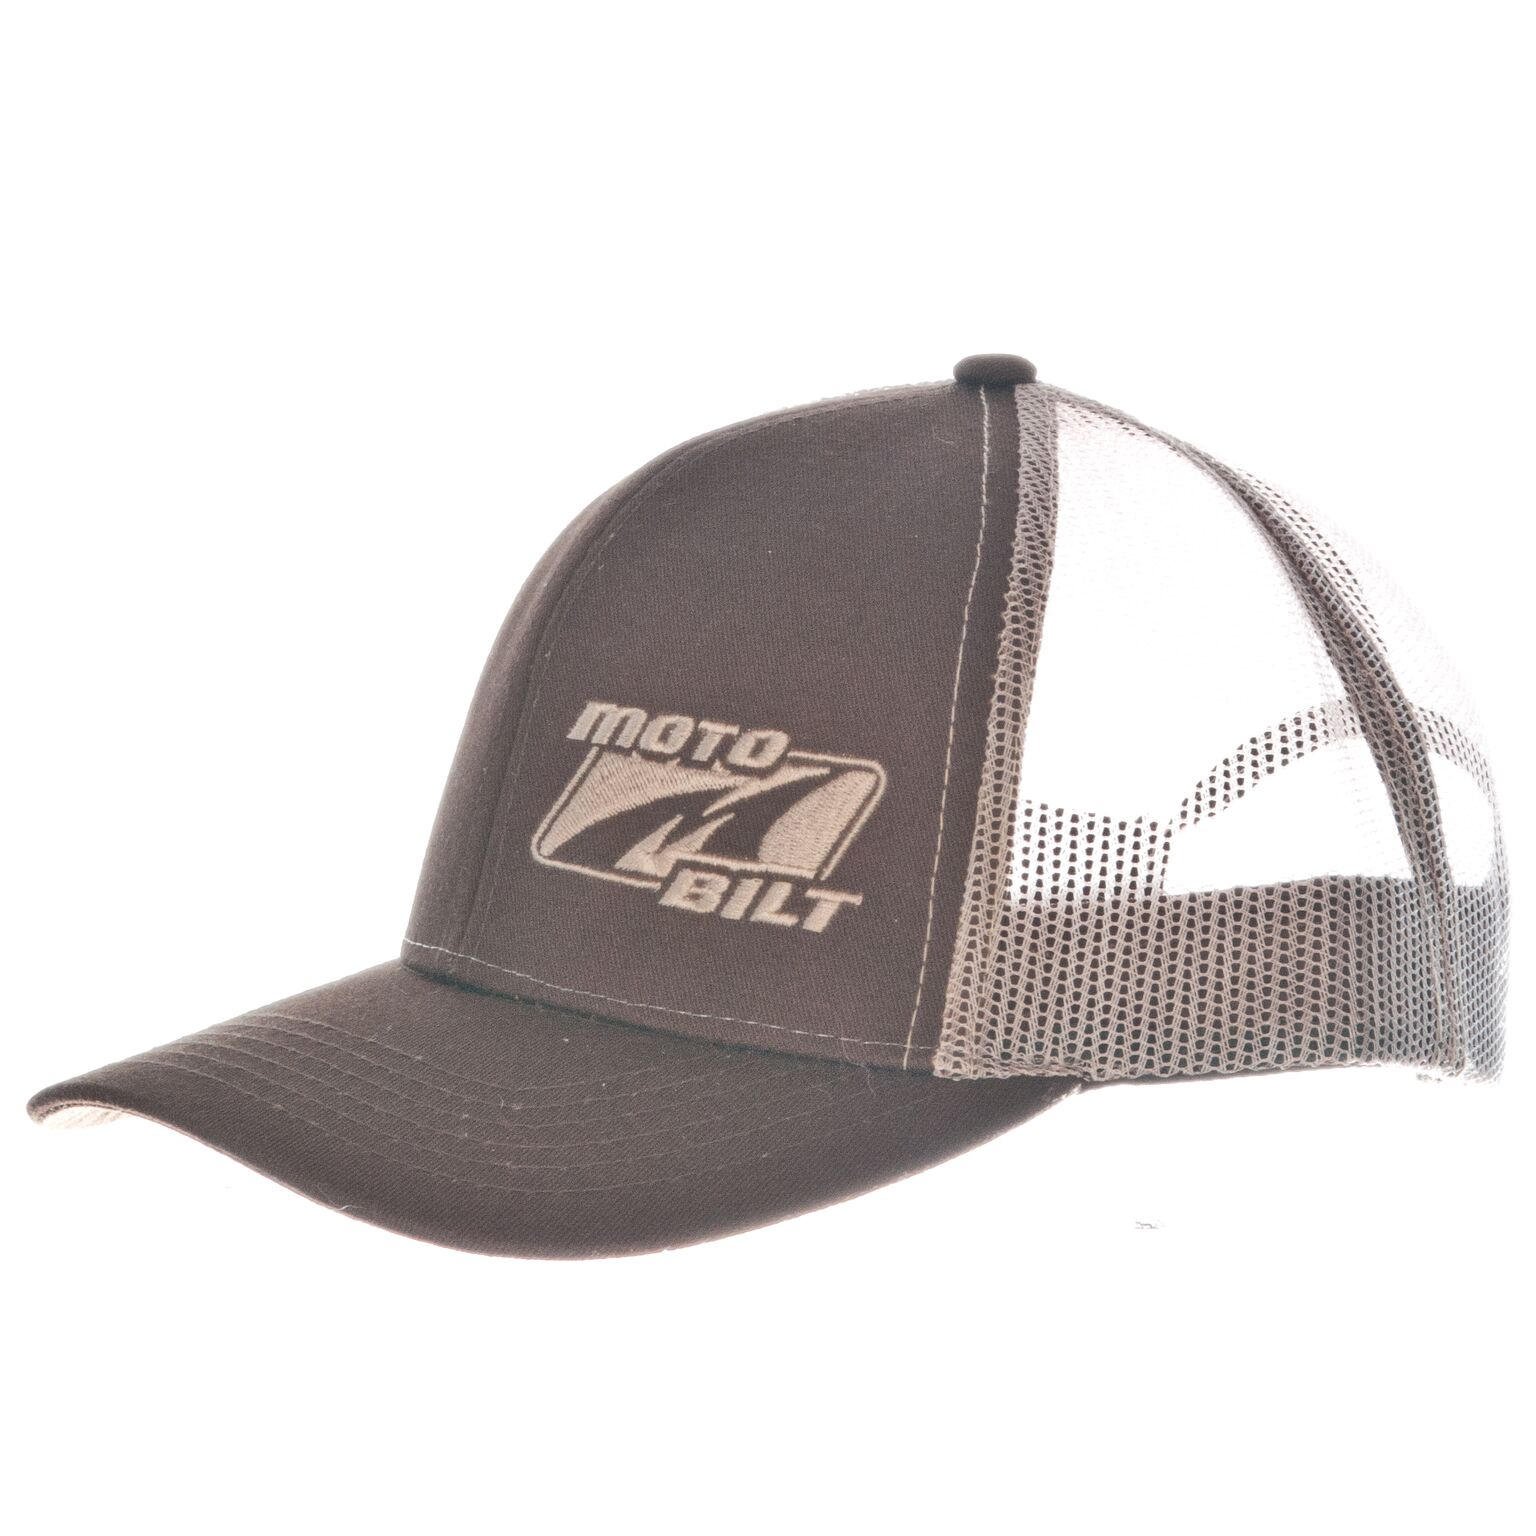 Motobilt Trucker Hat Brown & Beige